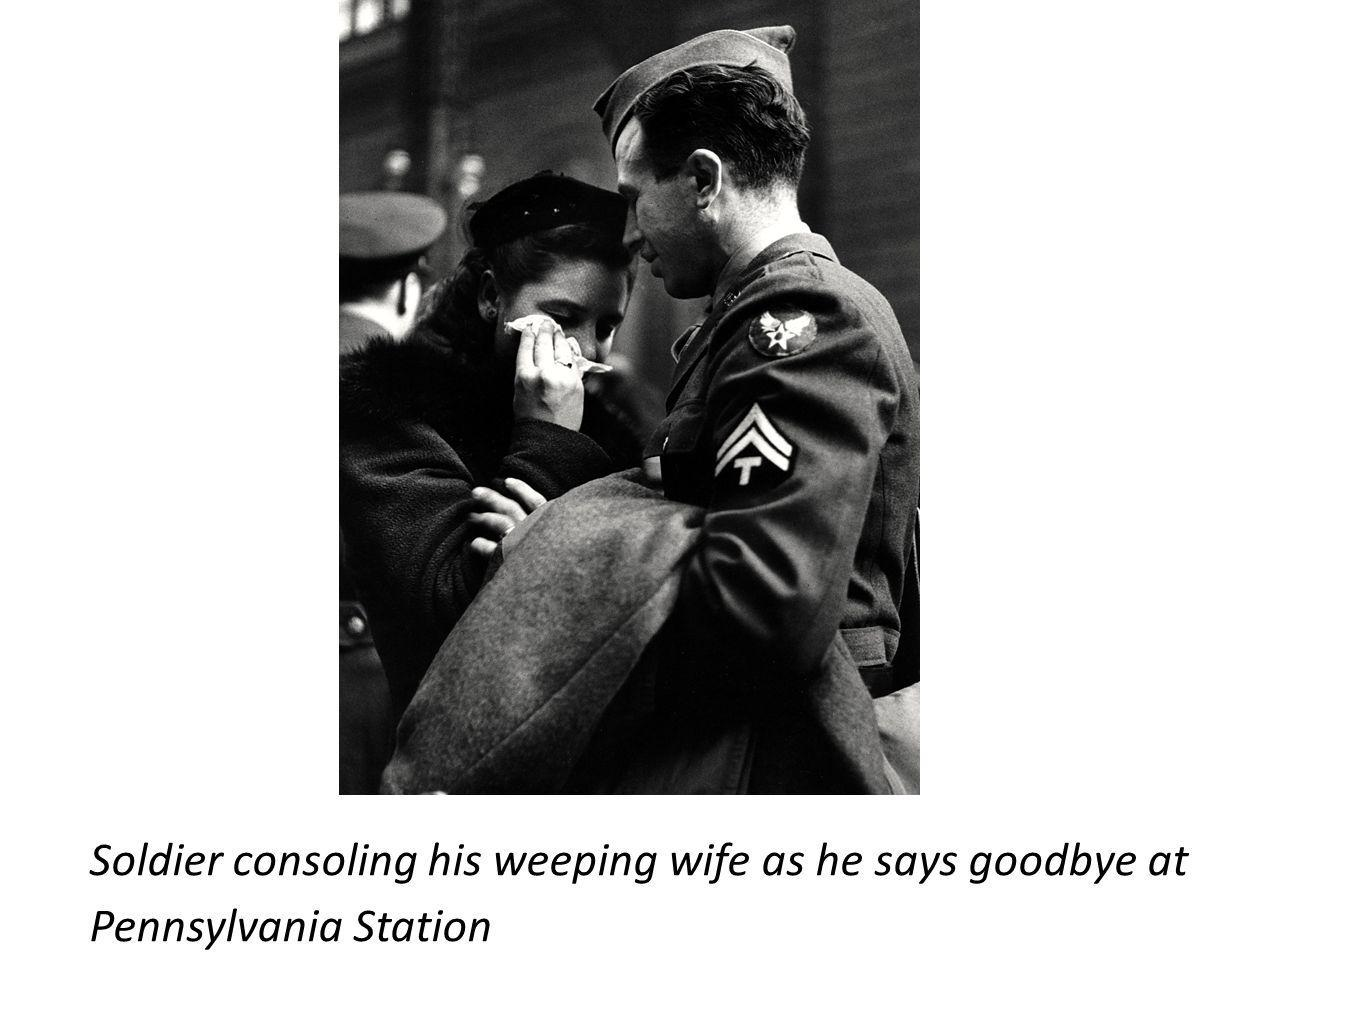 Soldier consoling his weeping wife as he says goodbye at Pennsylvania Station